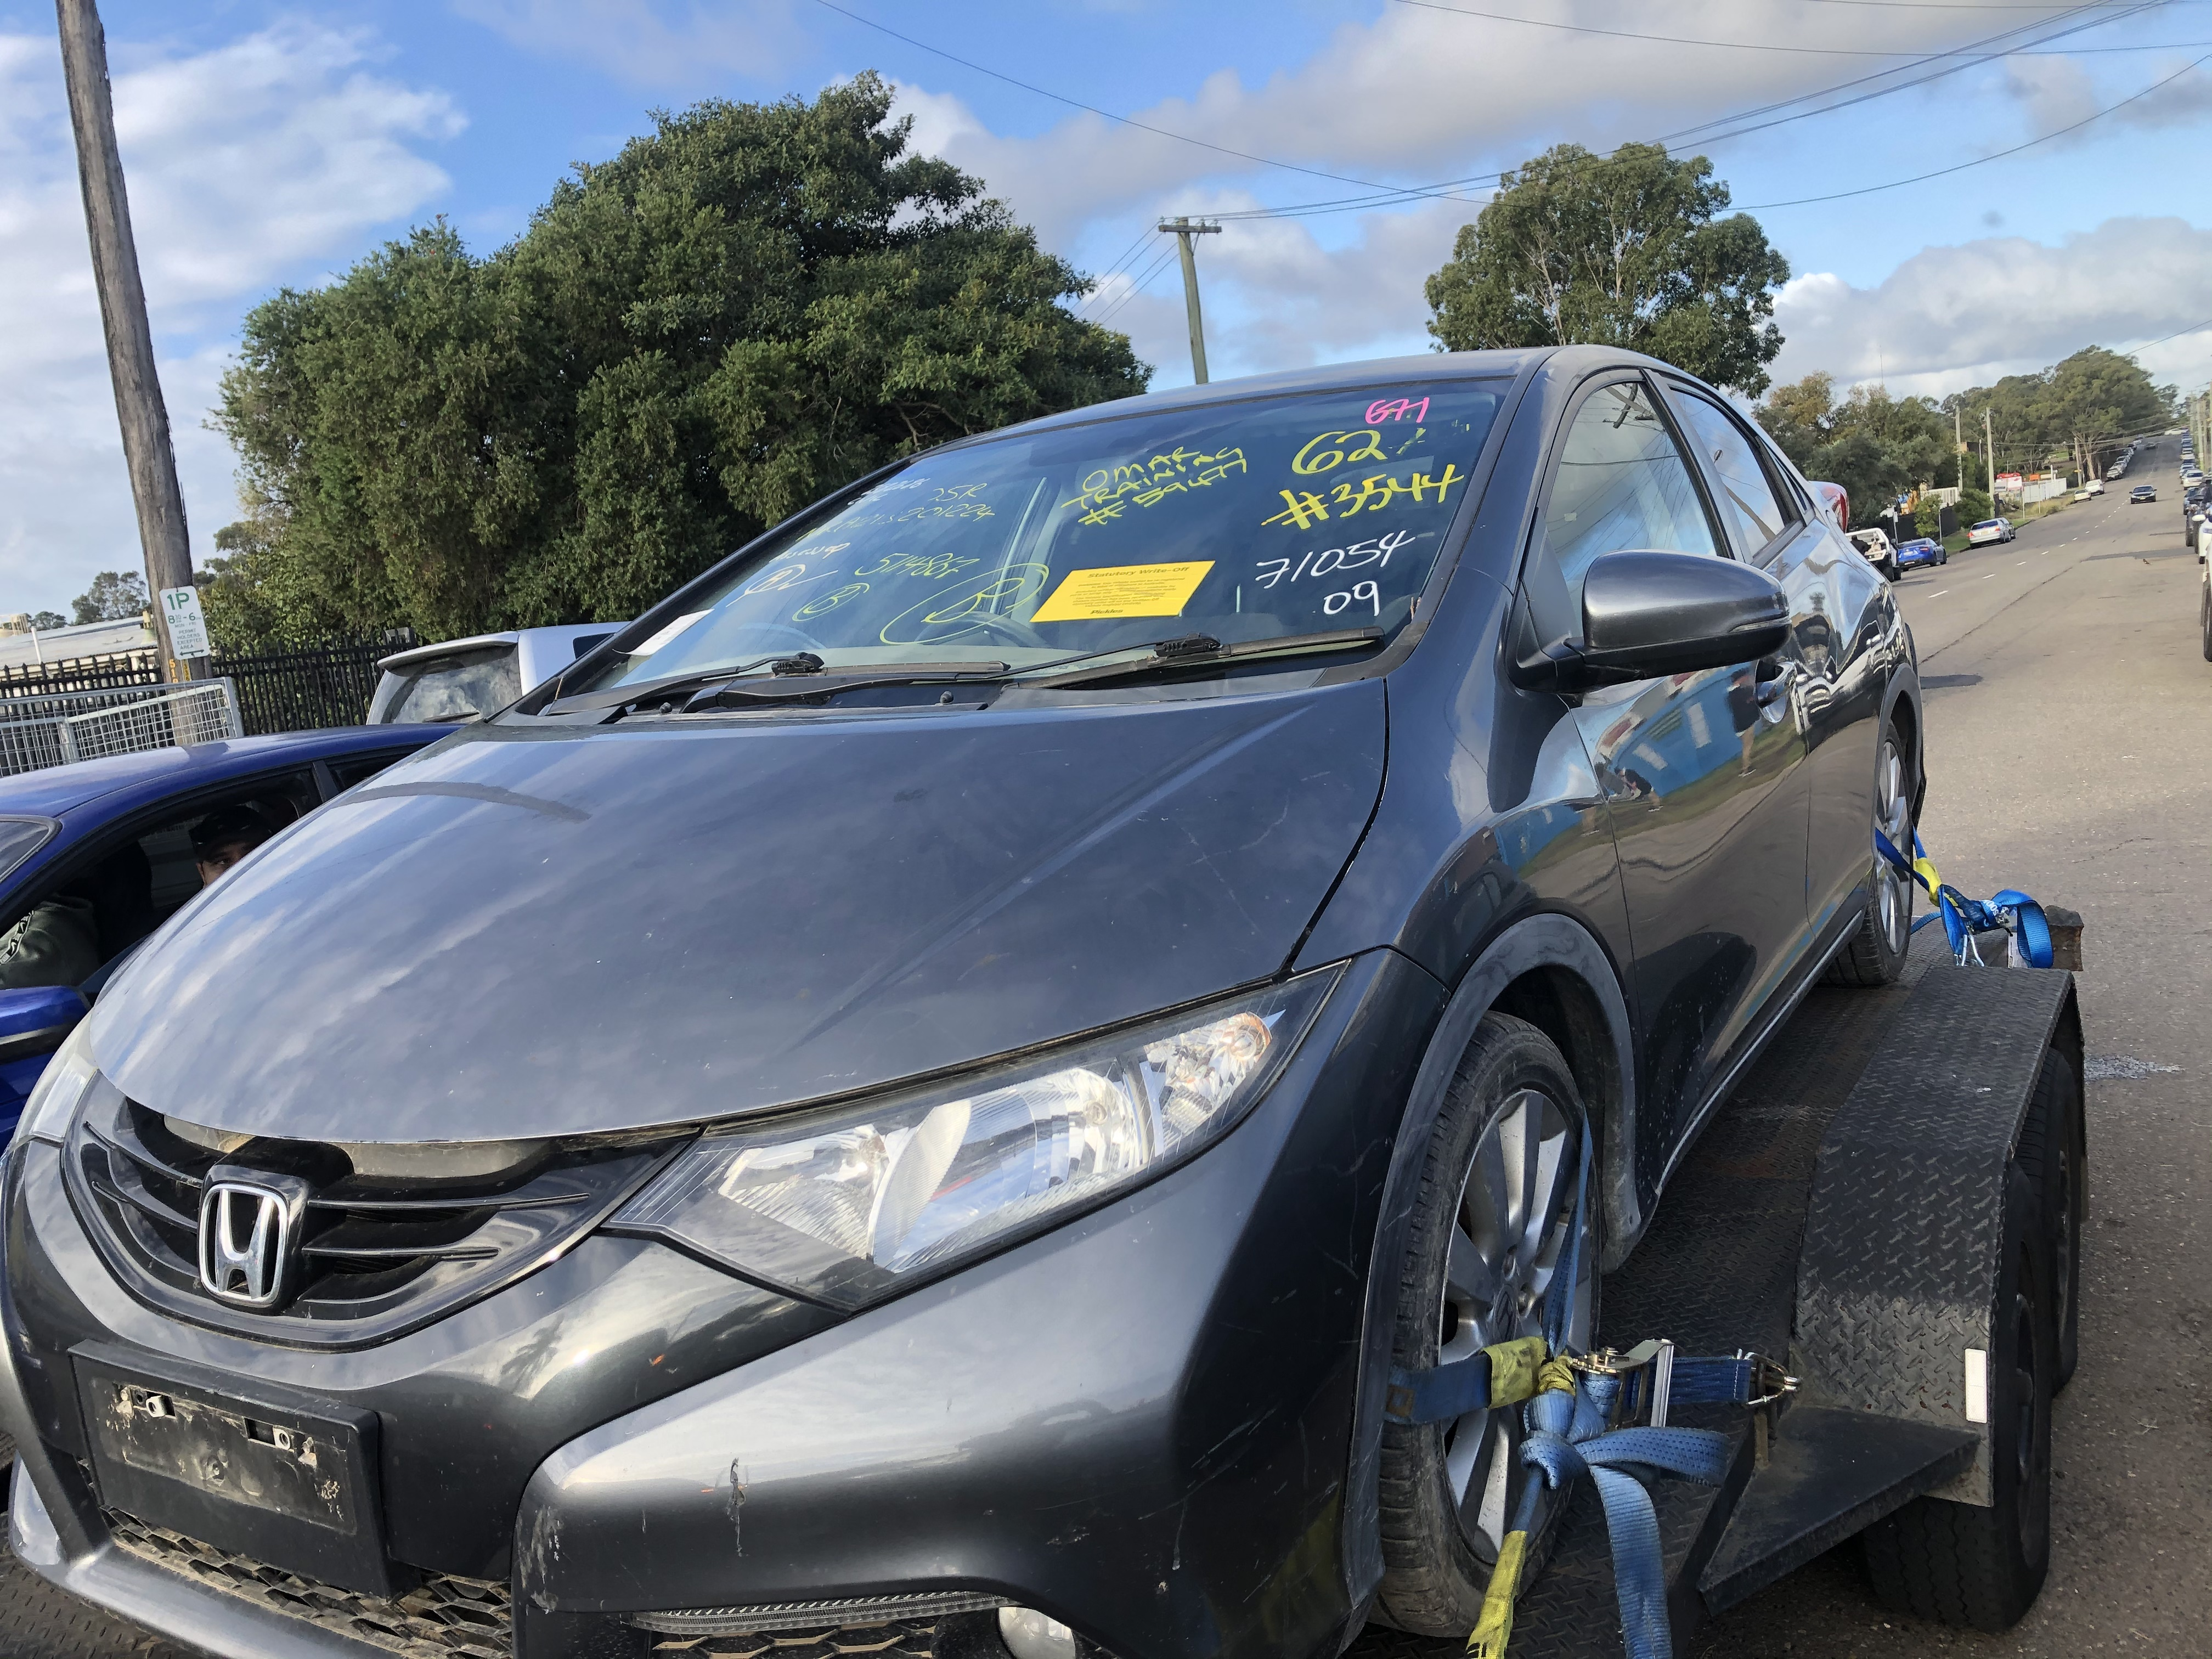 Honda Civic 2013 WRECKING All parts available Kingswood Autos WRECKERS 76 Cox Ave, Kingswood We open Monday to Saturday from 8 till 4 0247619998 04988 04988